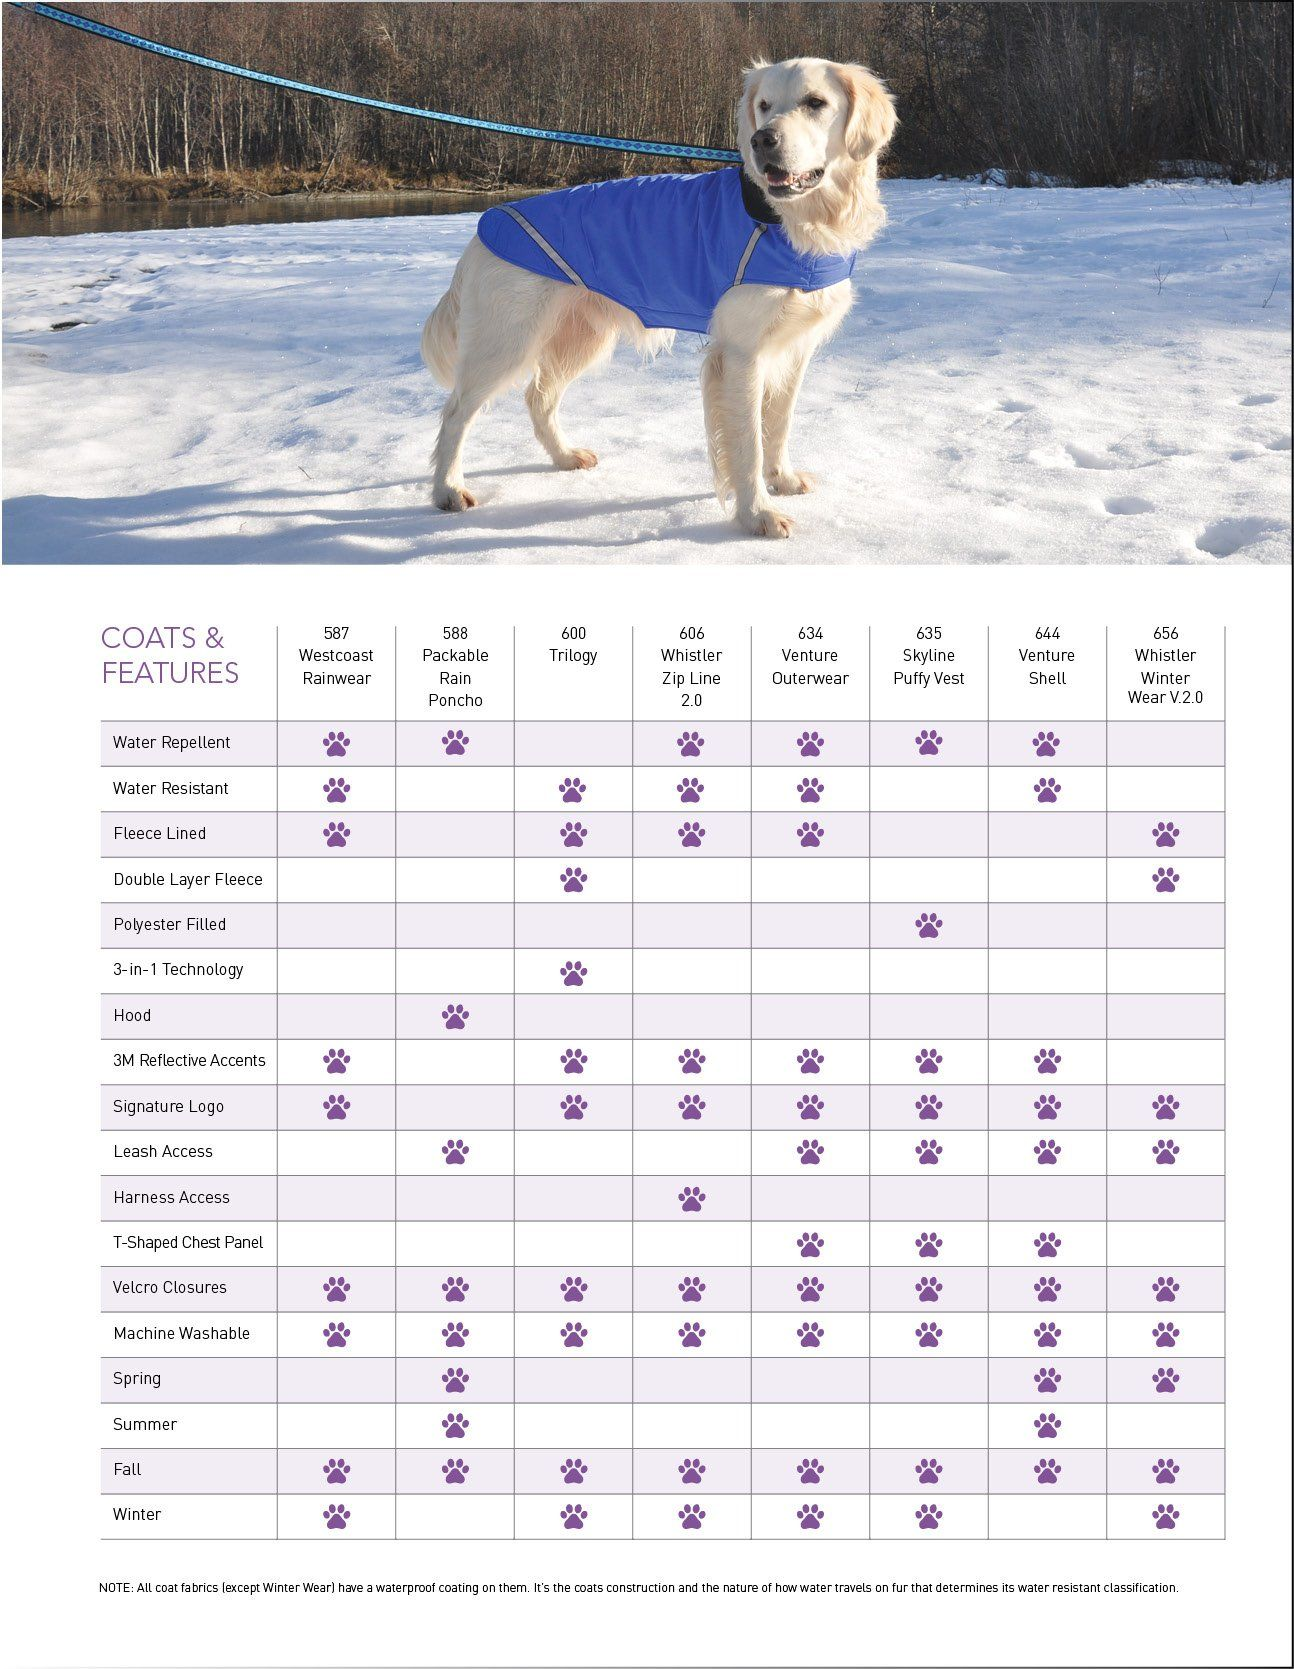 Rc Pet Products Whistler Winter Wear V 2 Fleece Dog Coat Size 16 Tan Tartan You Can Get More Details By Clicking On The Image Dog Coats Fleece Dog Coat Dogs [ 1669 x 1294 Pixel ]